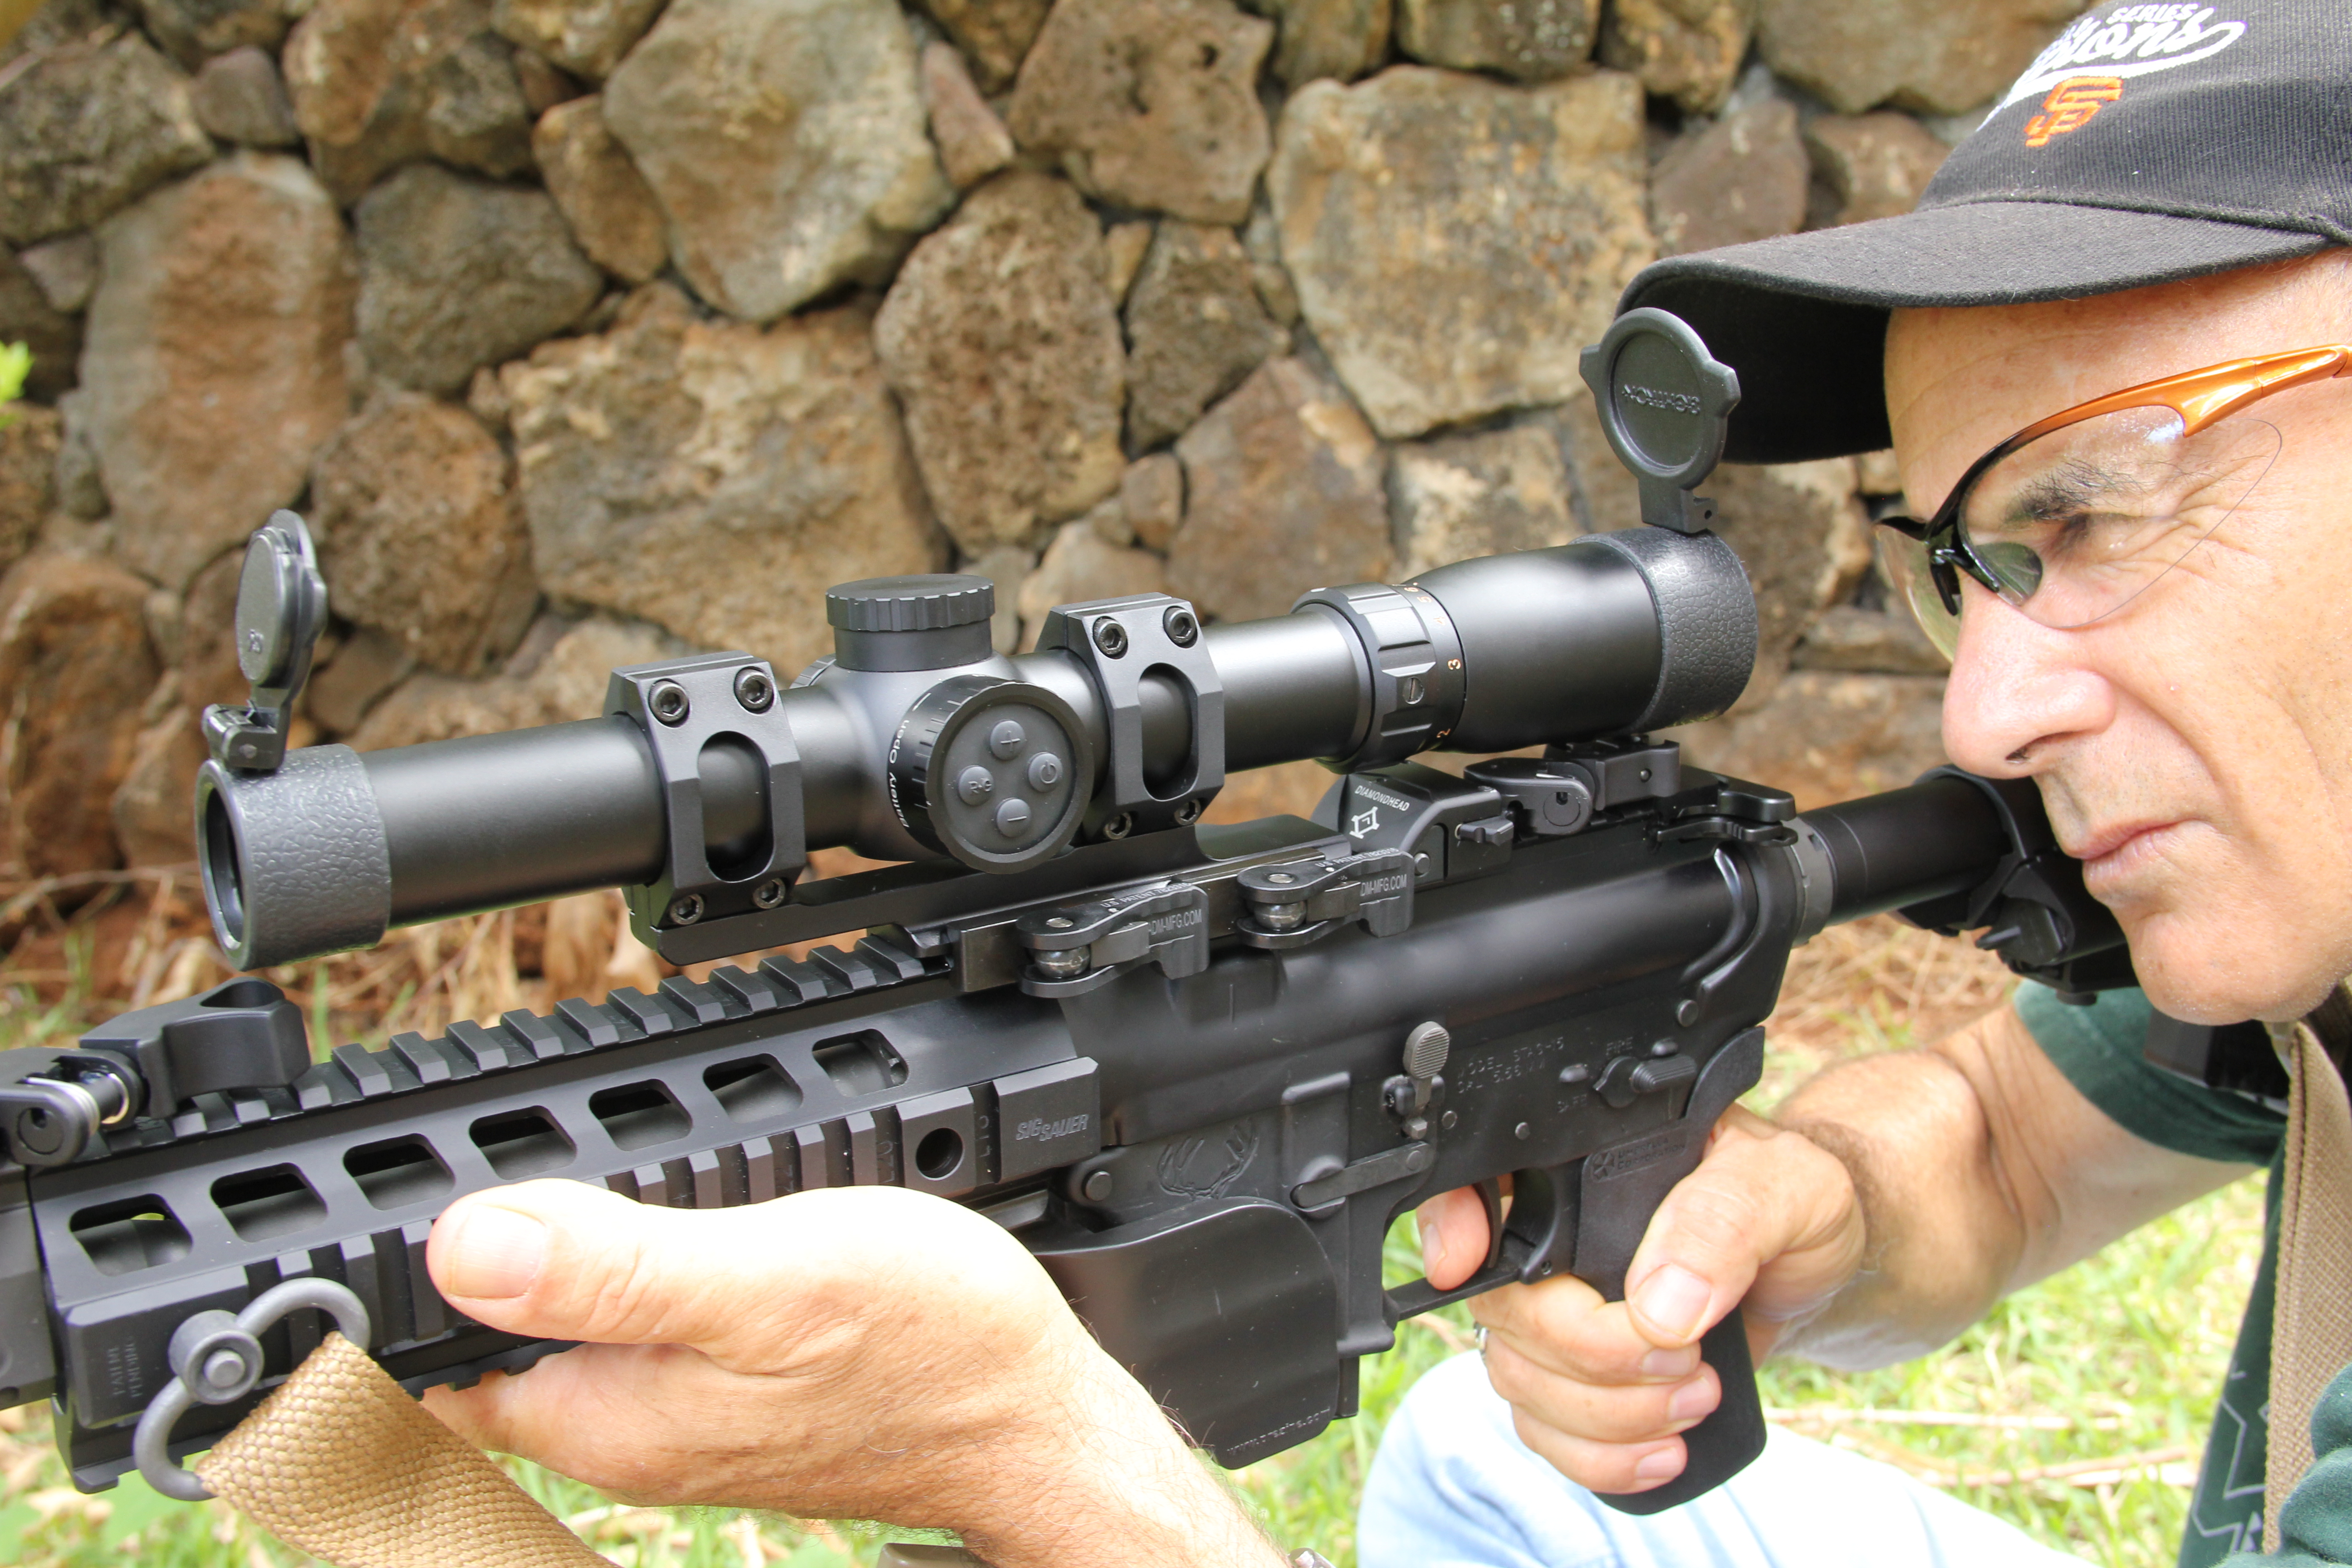 The Sightron SIII 1 7x24mm IRMOA Is A Sturdy Unit Fit For Hunting 3 Gun And Range Work At Reasonably Price